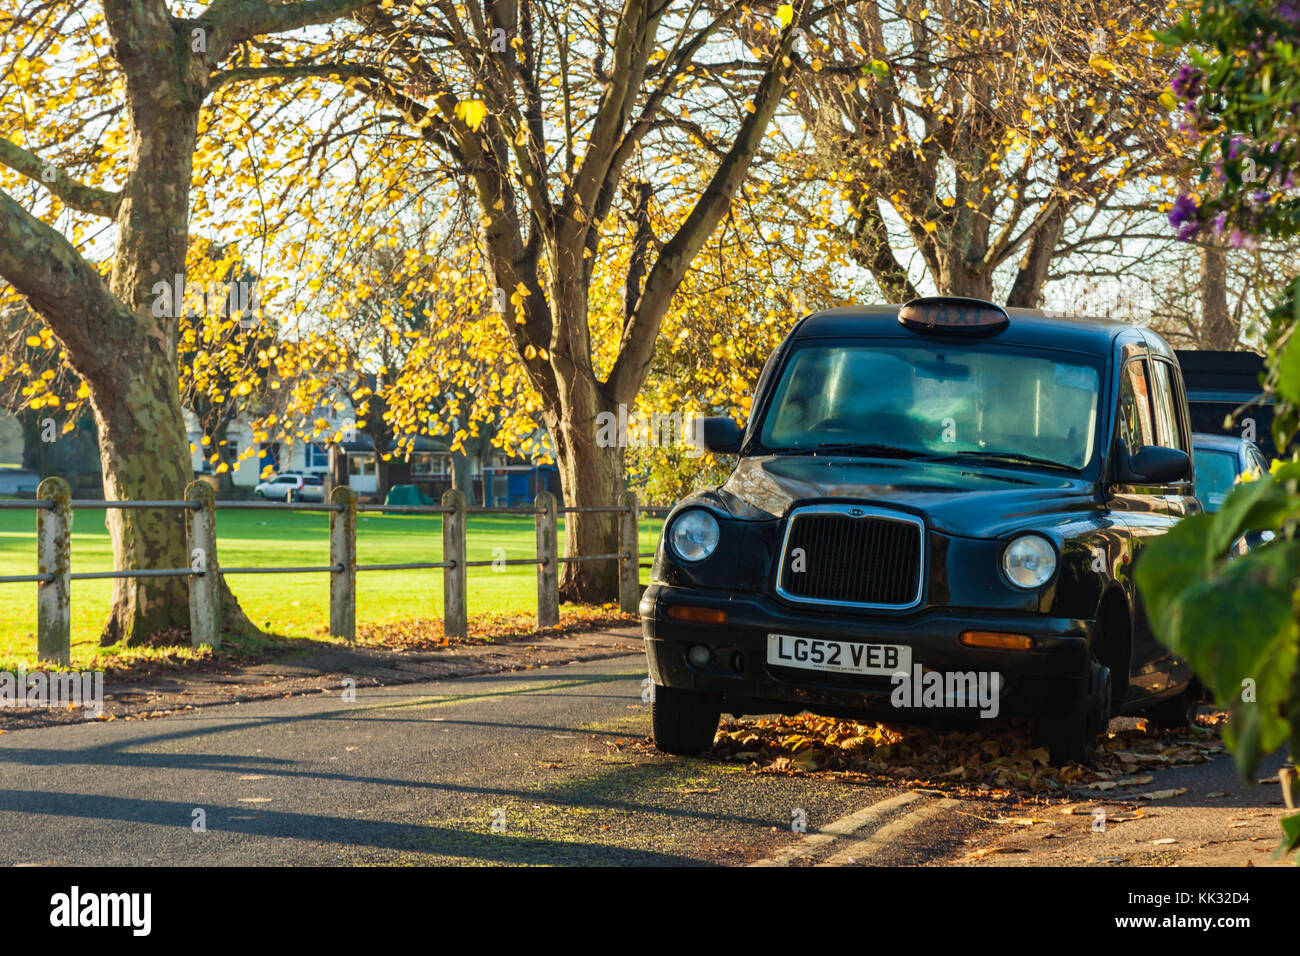 Hackney cab parked on a street in Southwick, West Sussex, England. - Stock Image